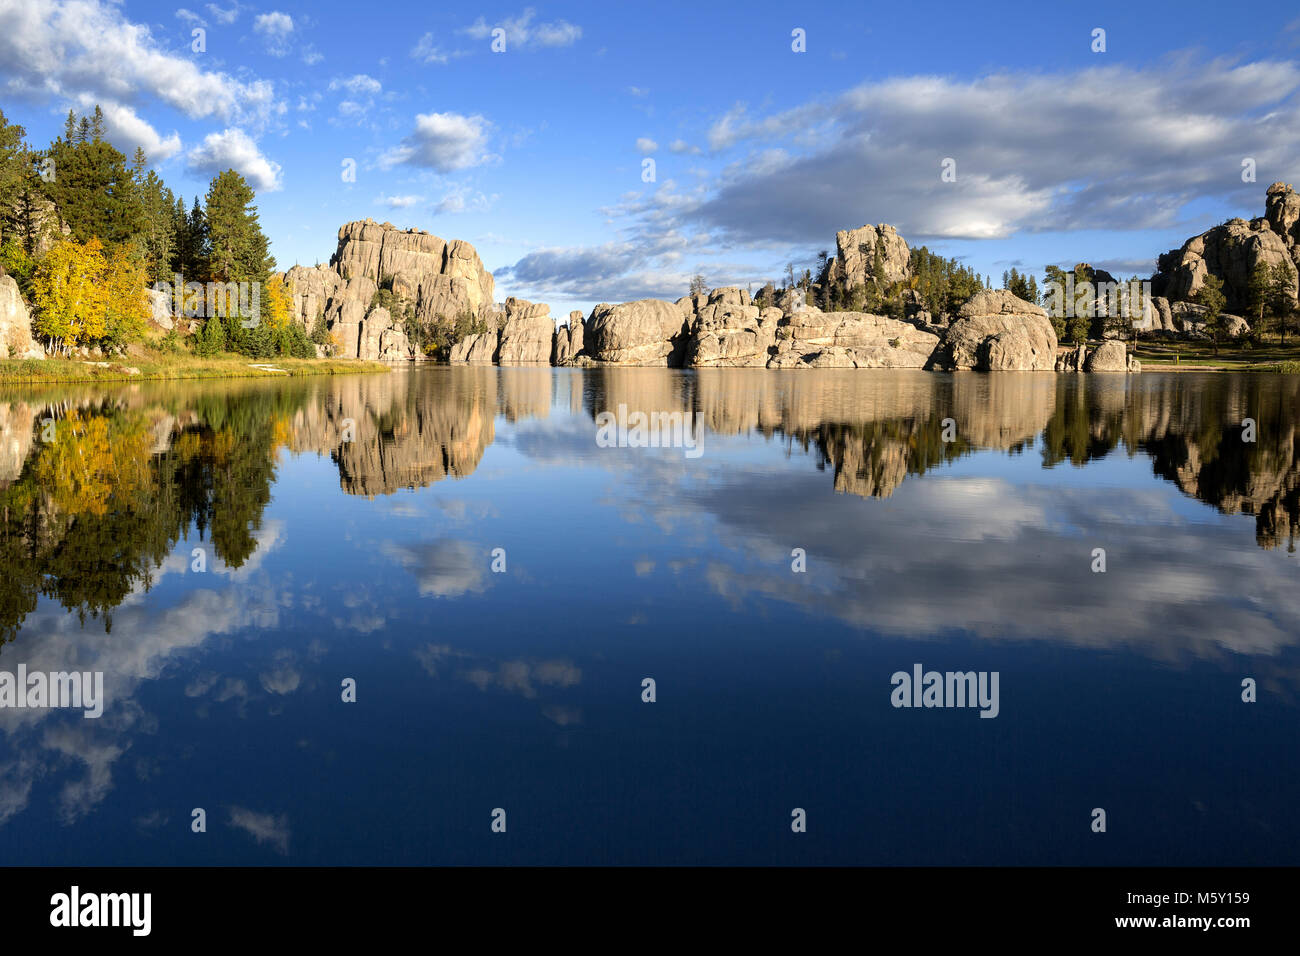 SD00073-00...SOUTH DAKOTA - Reflections on Sylvan Lake in Custer State Park. - Stock Image